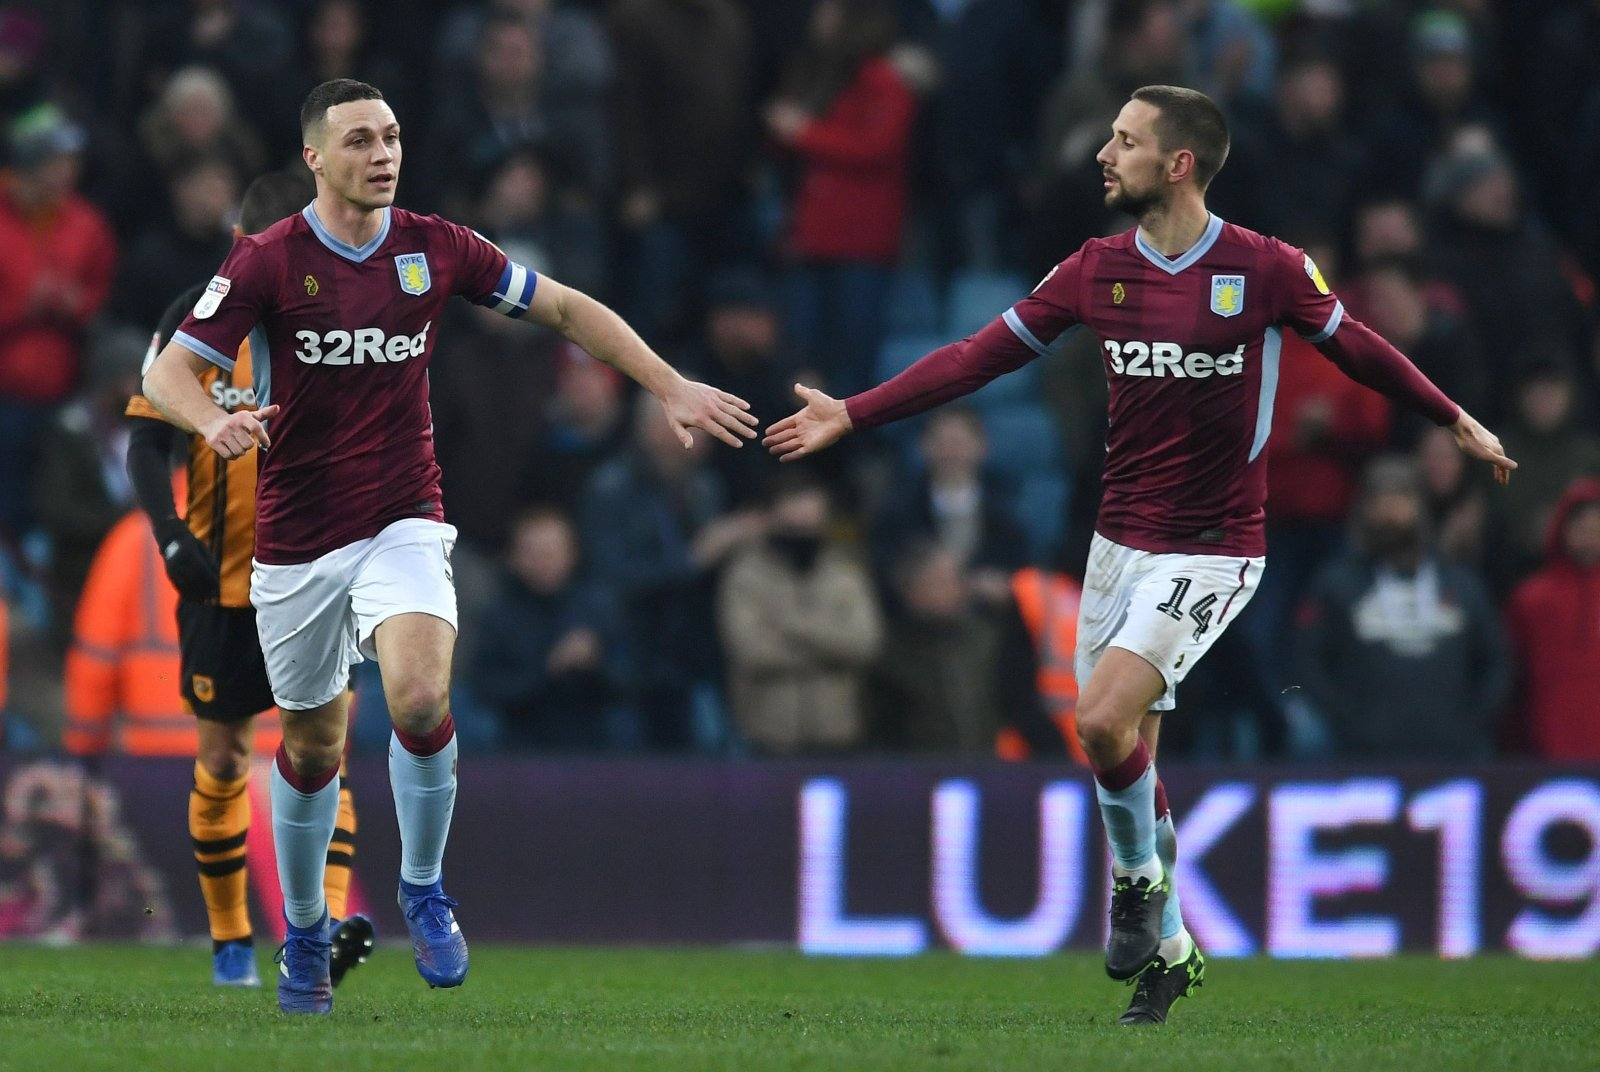 Saturday's draw against Hull City should've been a big wake call for James Chester